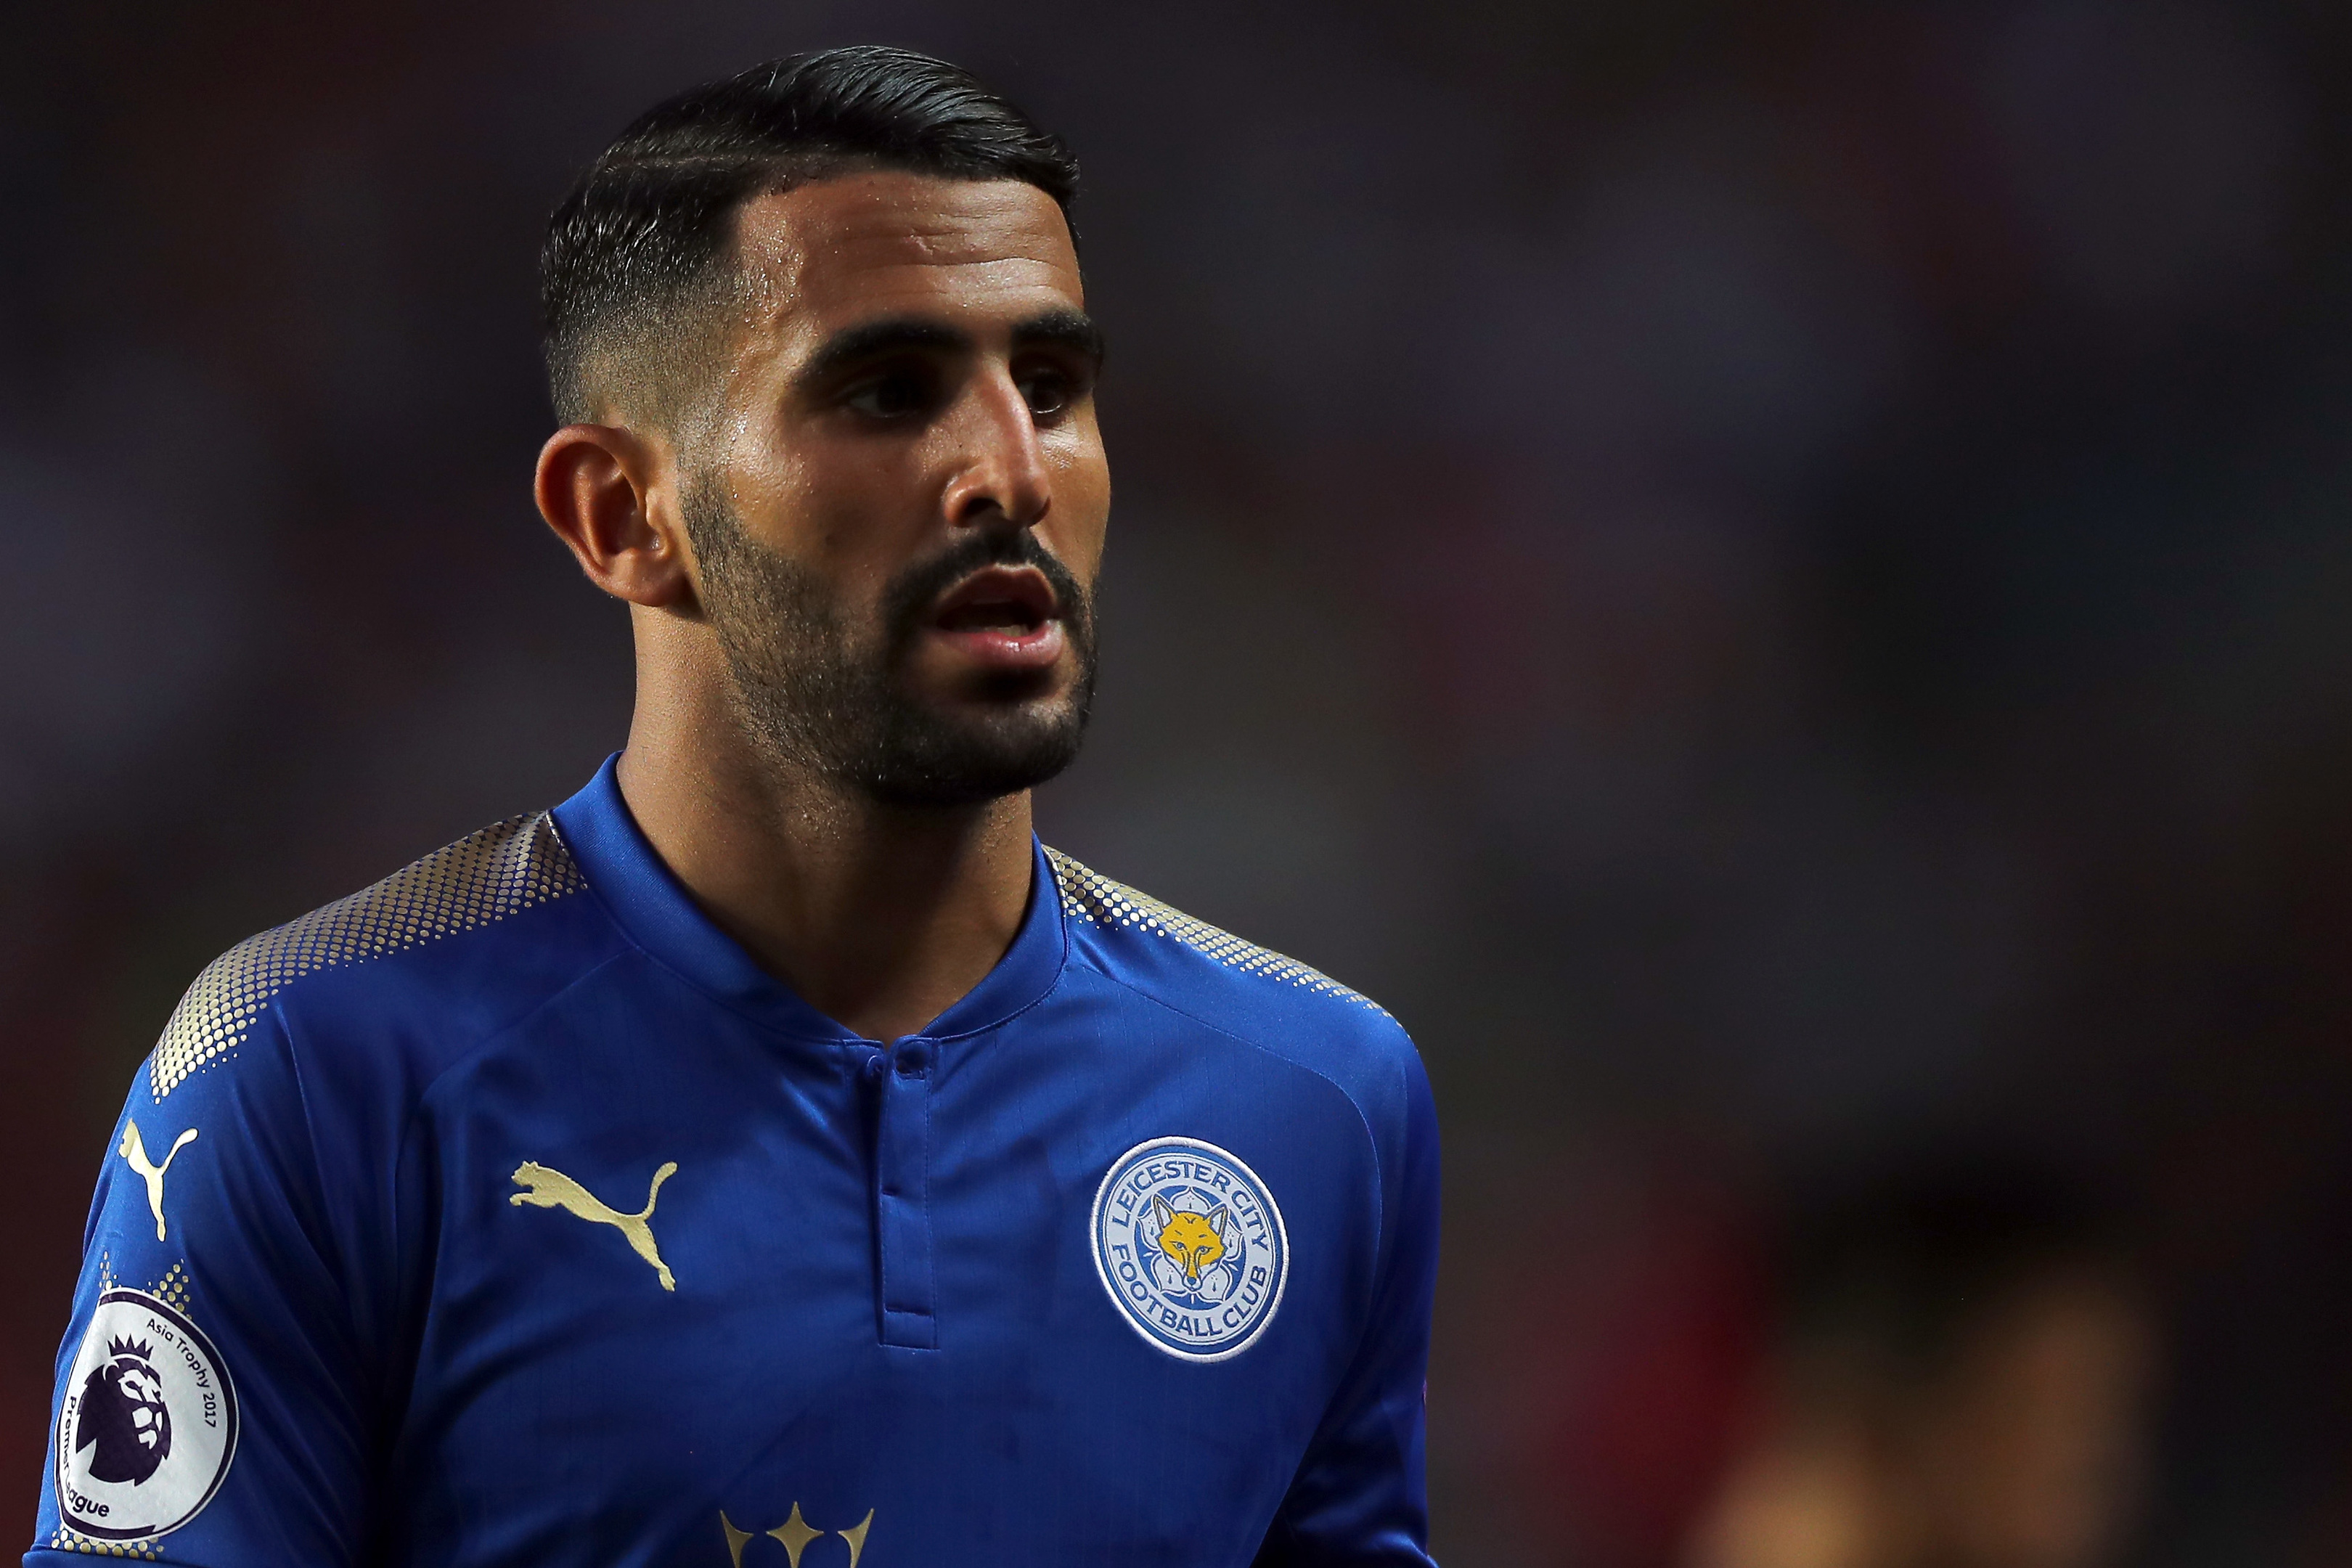 Riyad Mahrez of Leicester City (Stanley Chou/Getty Images)